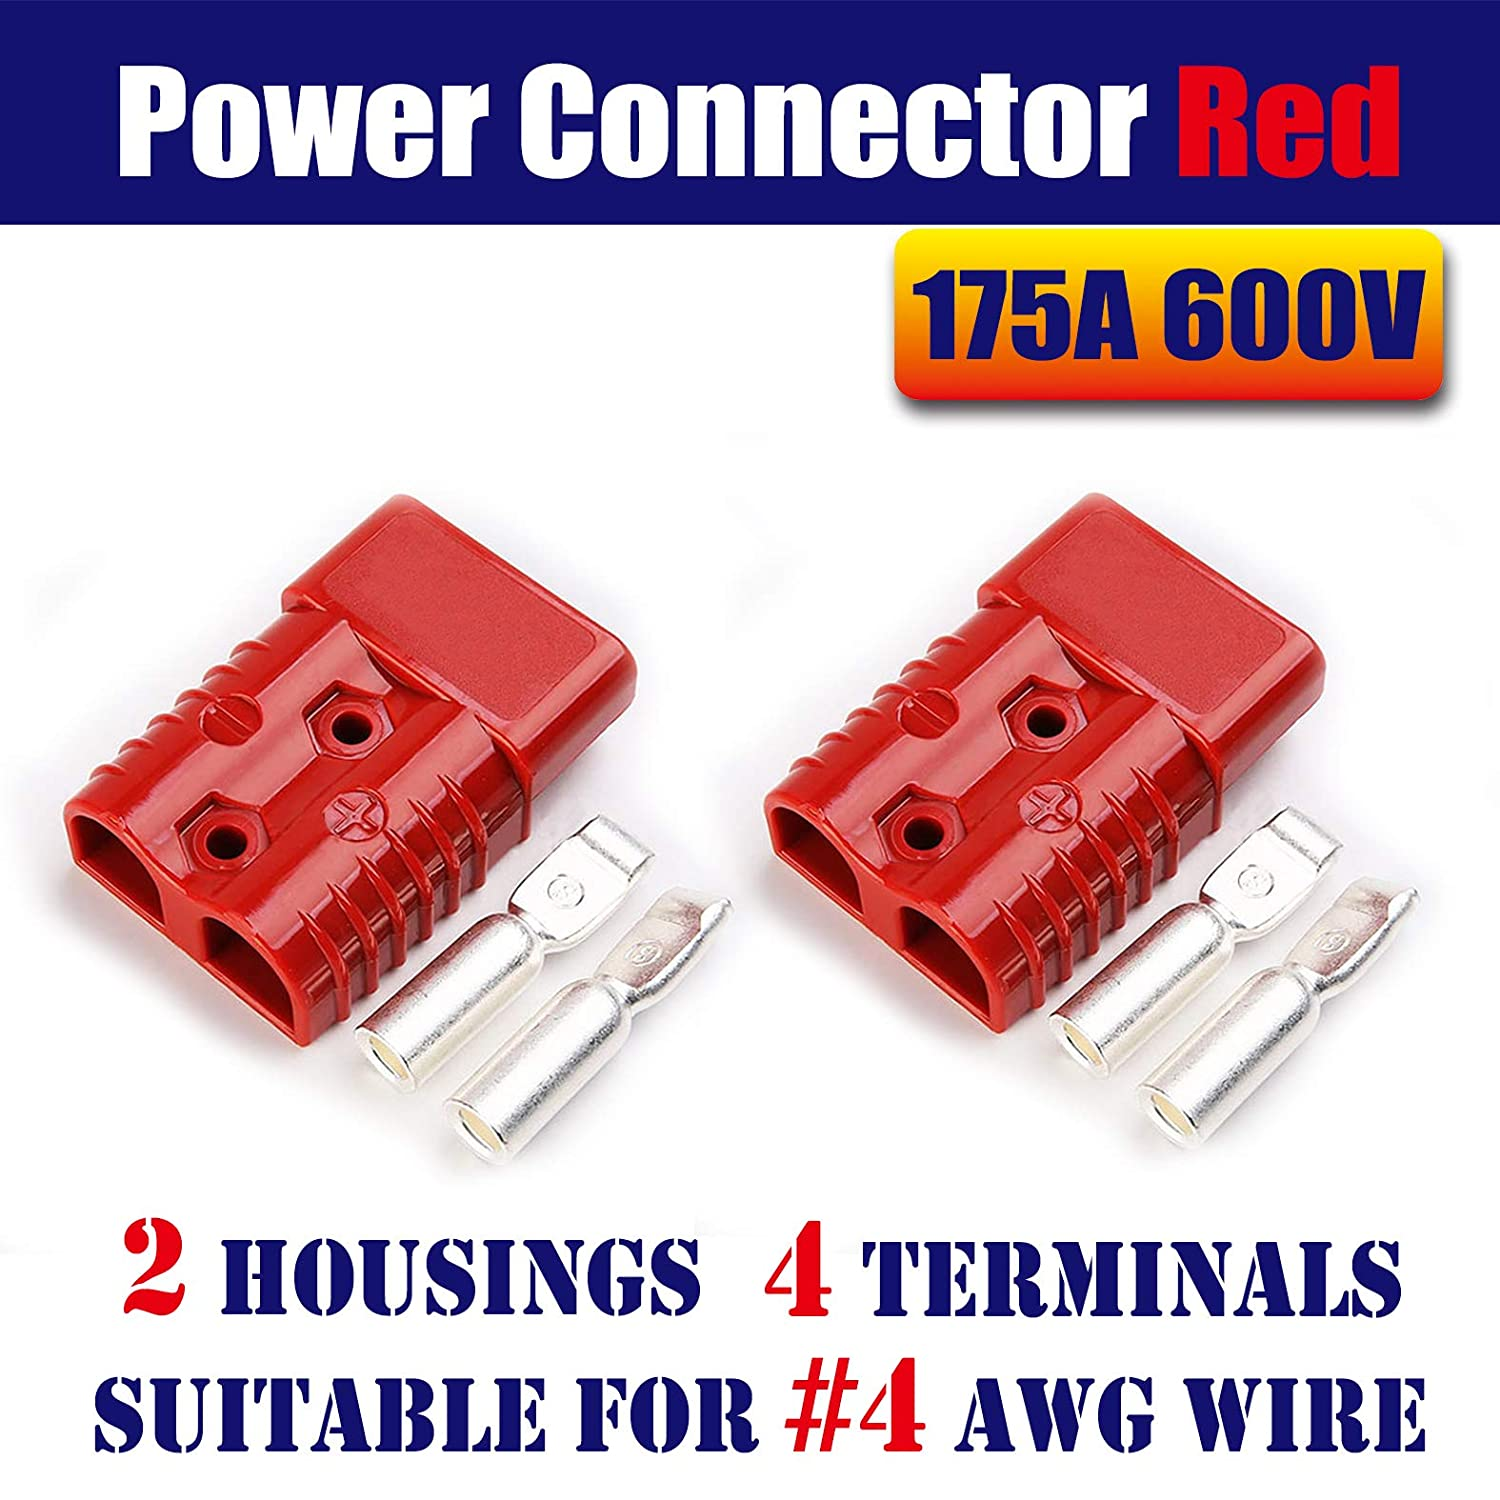 Mr.Brighton LED 175Amp Anderson Compatible 2 Pole Power Connector Plug Red w//Terminals for #4 AWG Wire 2 housing+4 Terminal pins